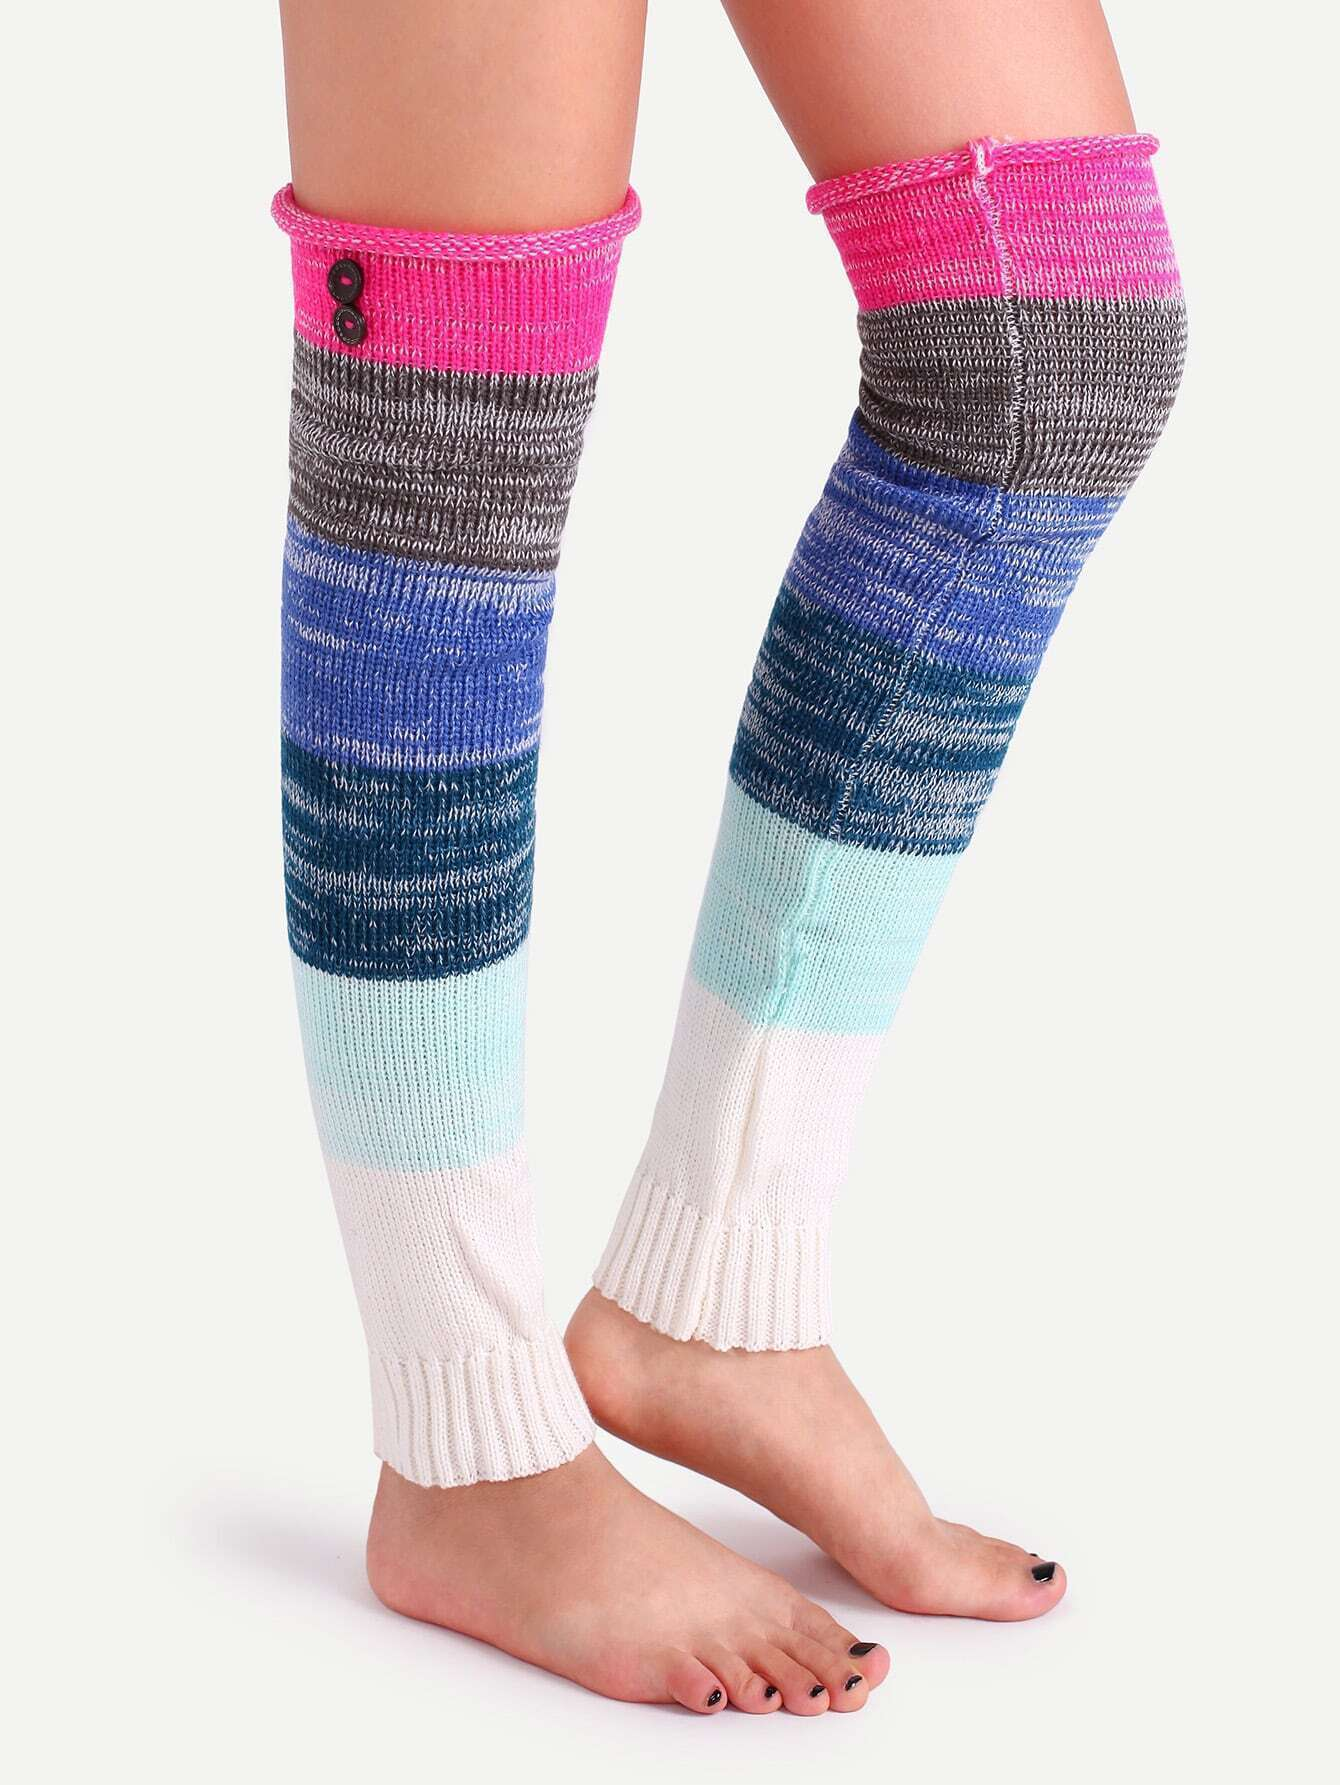 Knitting Pattern For Leg Warmers With Buttons : Multicolor Patchwork Button Knit Leg Warmers